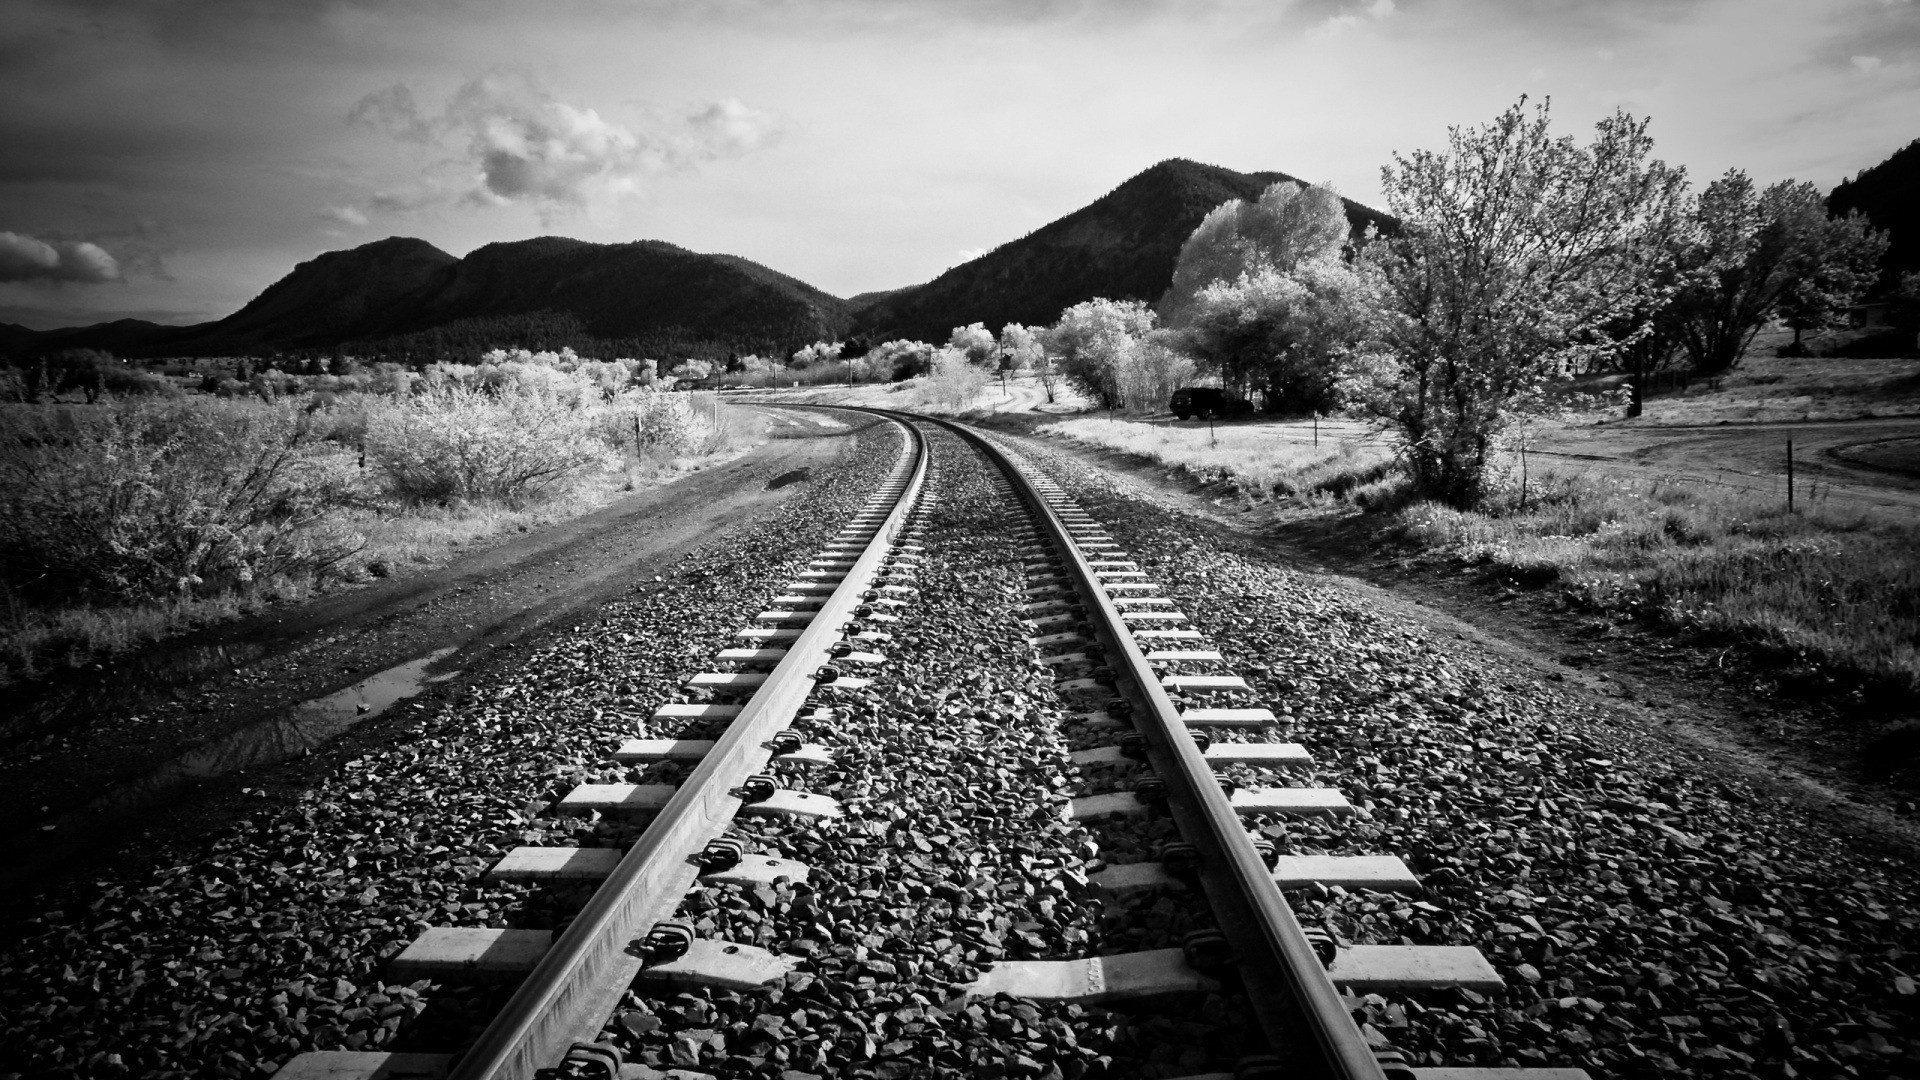 mountains landscapes nature trains grayscale monochrome trainway black  white HD Wallpapers